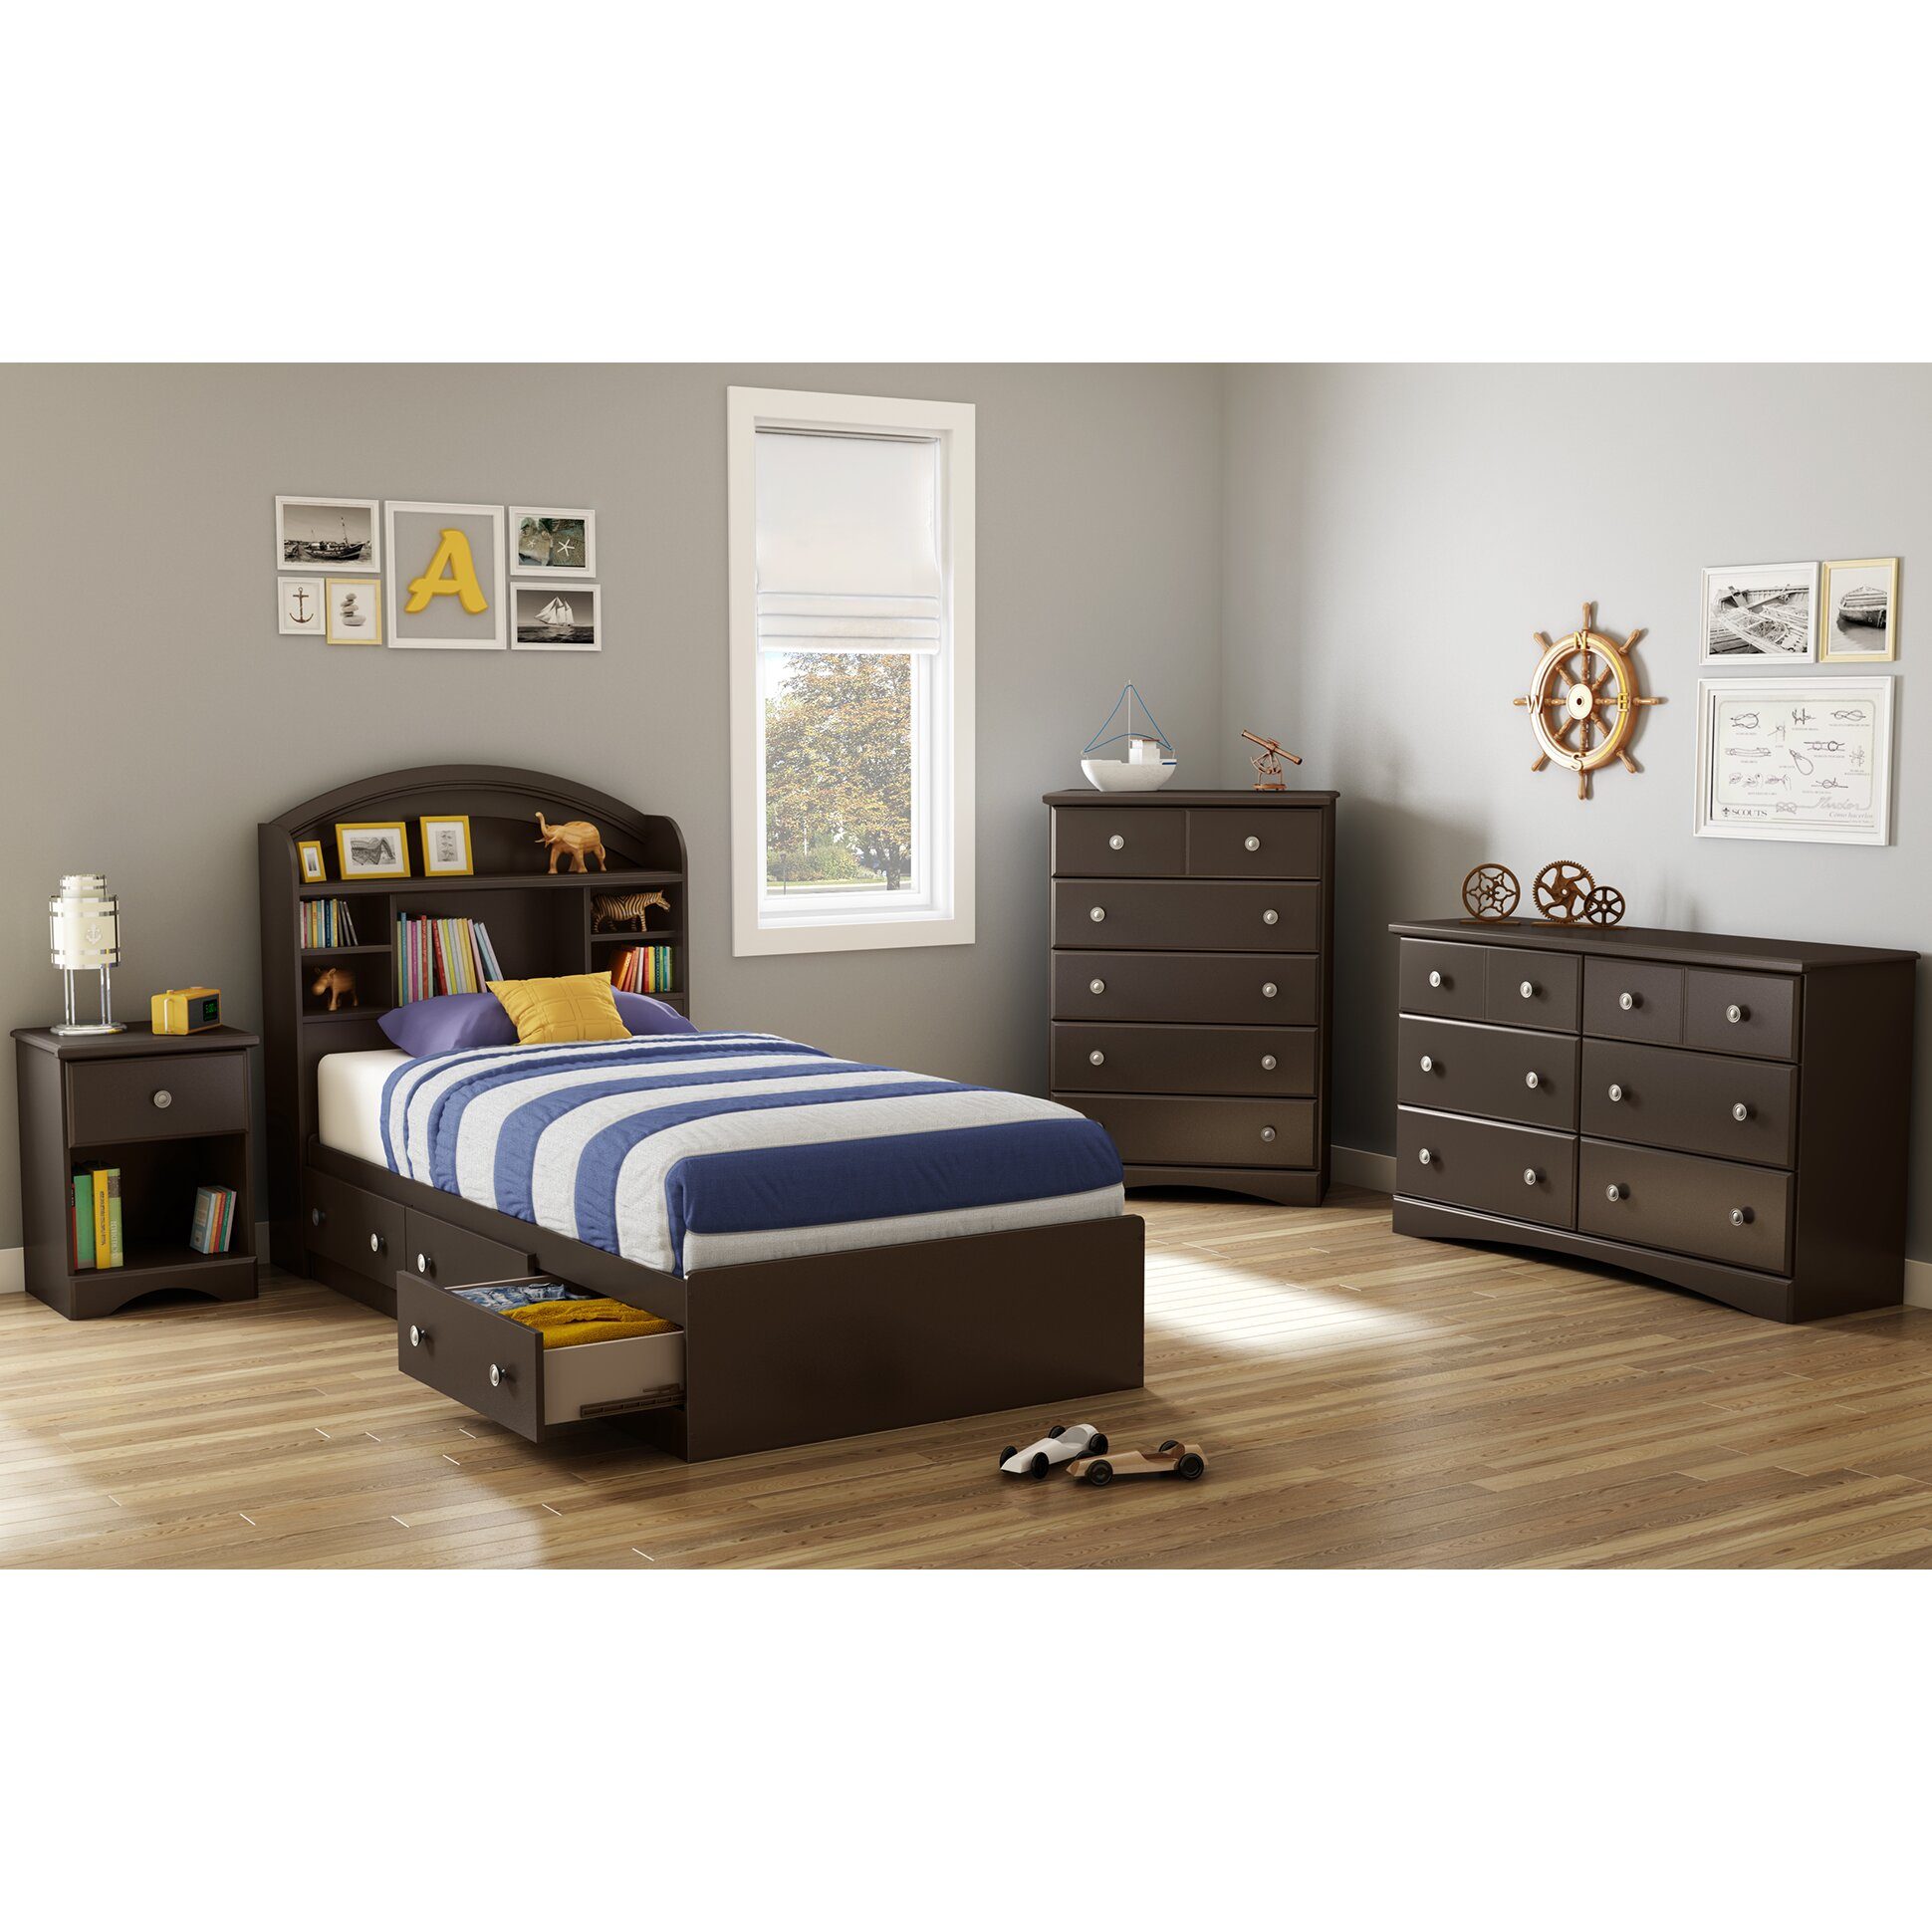 South Shore Bedroom Furniture South Shore Morning Dew Platform Customizable Bedroom Set